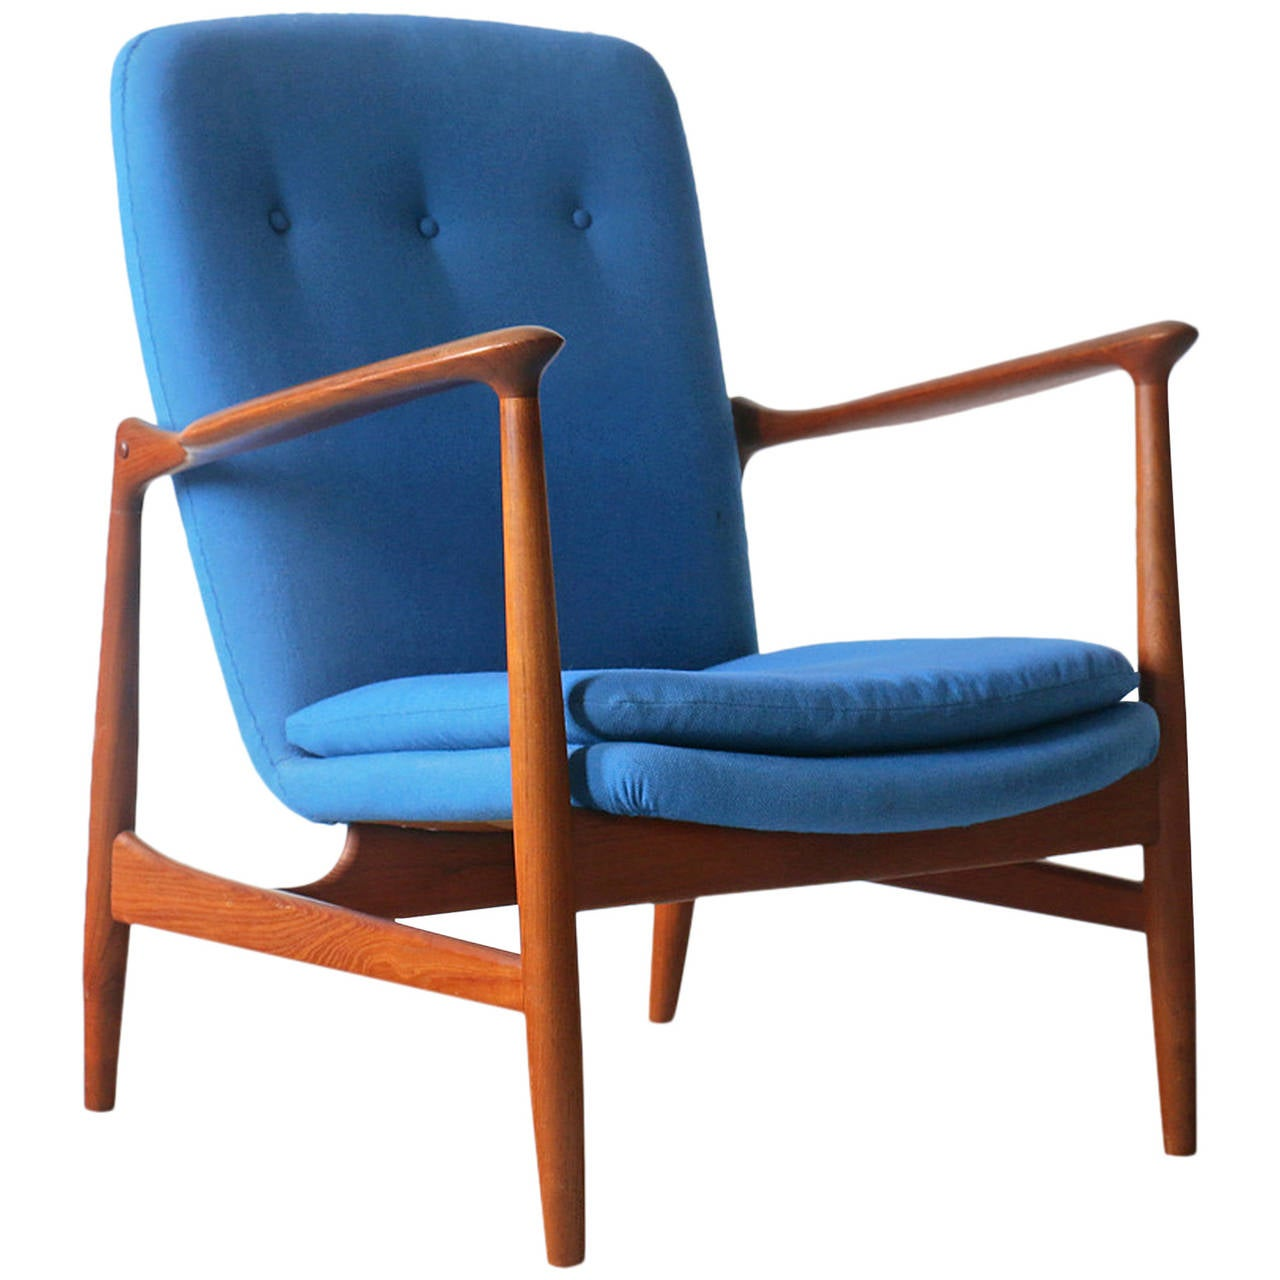 Great Finn Juhl BO98 Bovirke Vintage Danish Modern Teak Easy Chair 1